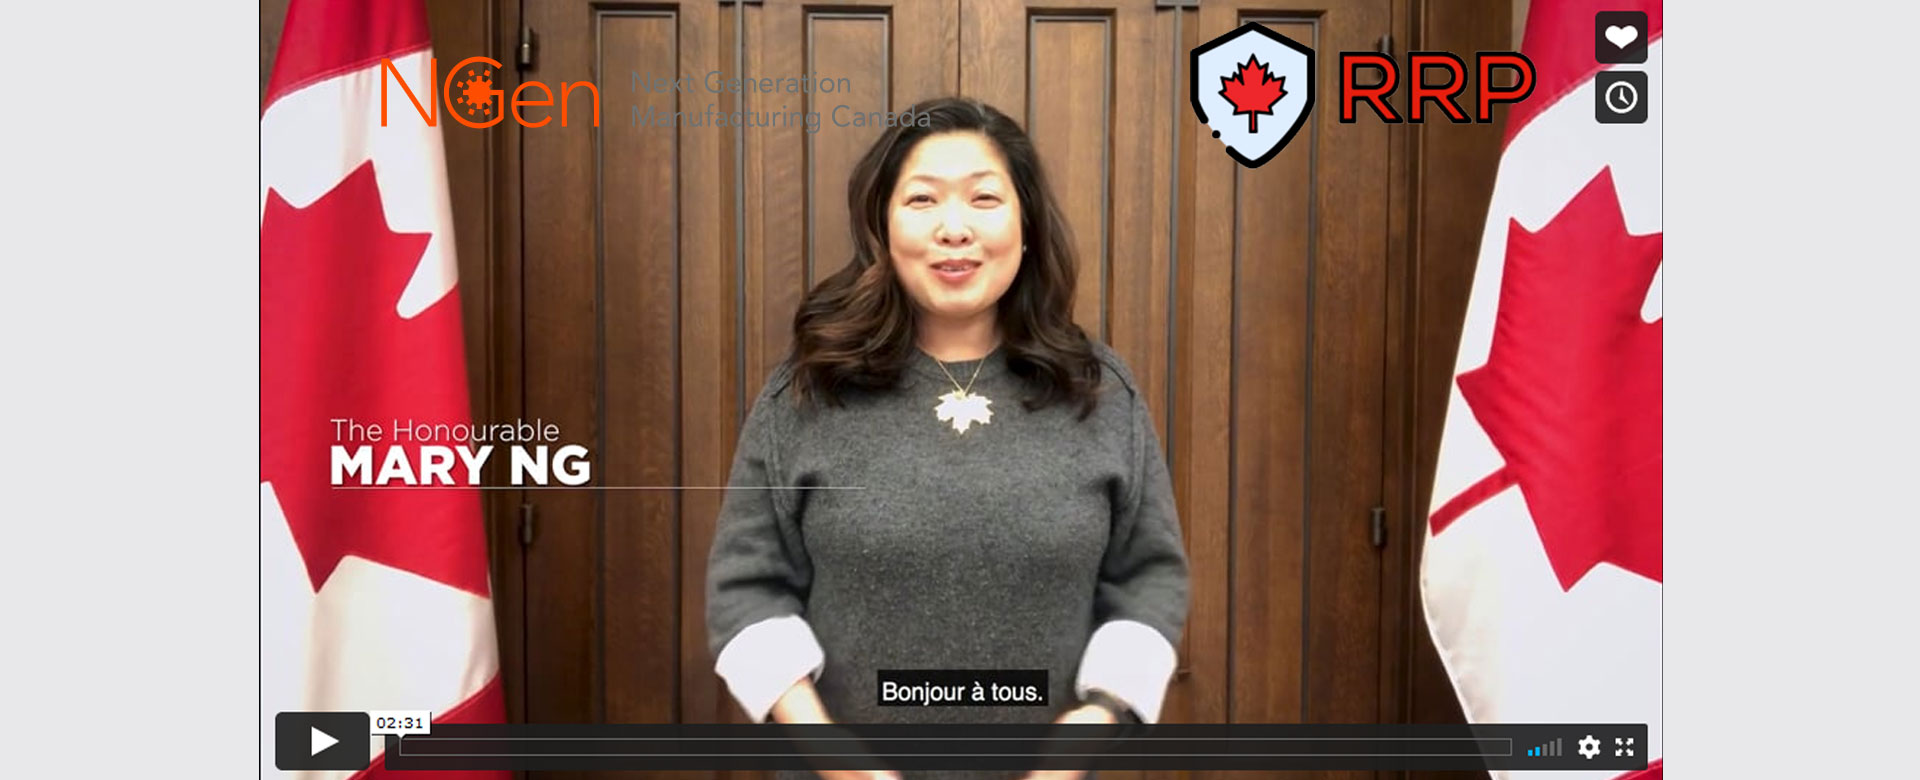 Ngen-Canada-annunces-relaunch-of-RRP-Canada-PPE-Marketplace